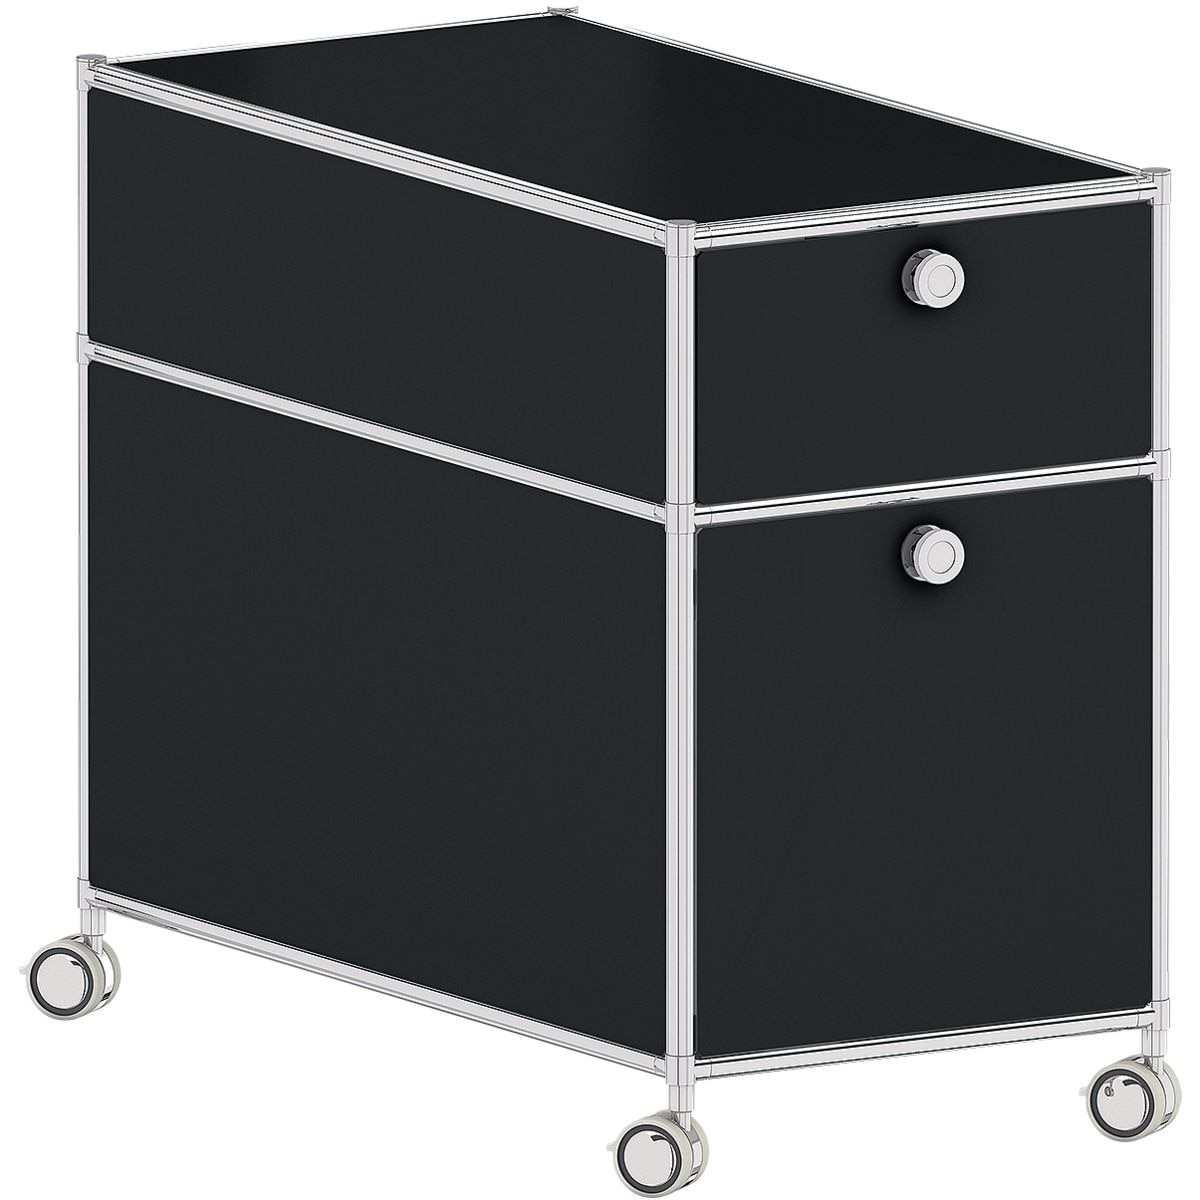 viasit rollcontainer system 4 bei otto office g nstig. Black Bedroom Furniture Sets. Home Design Ideas